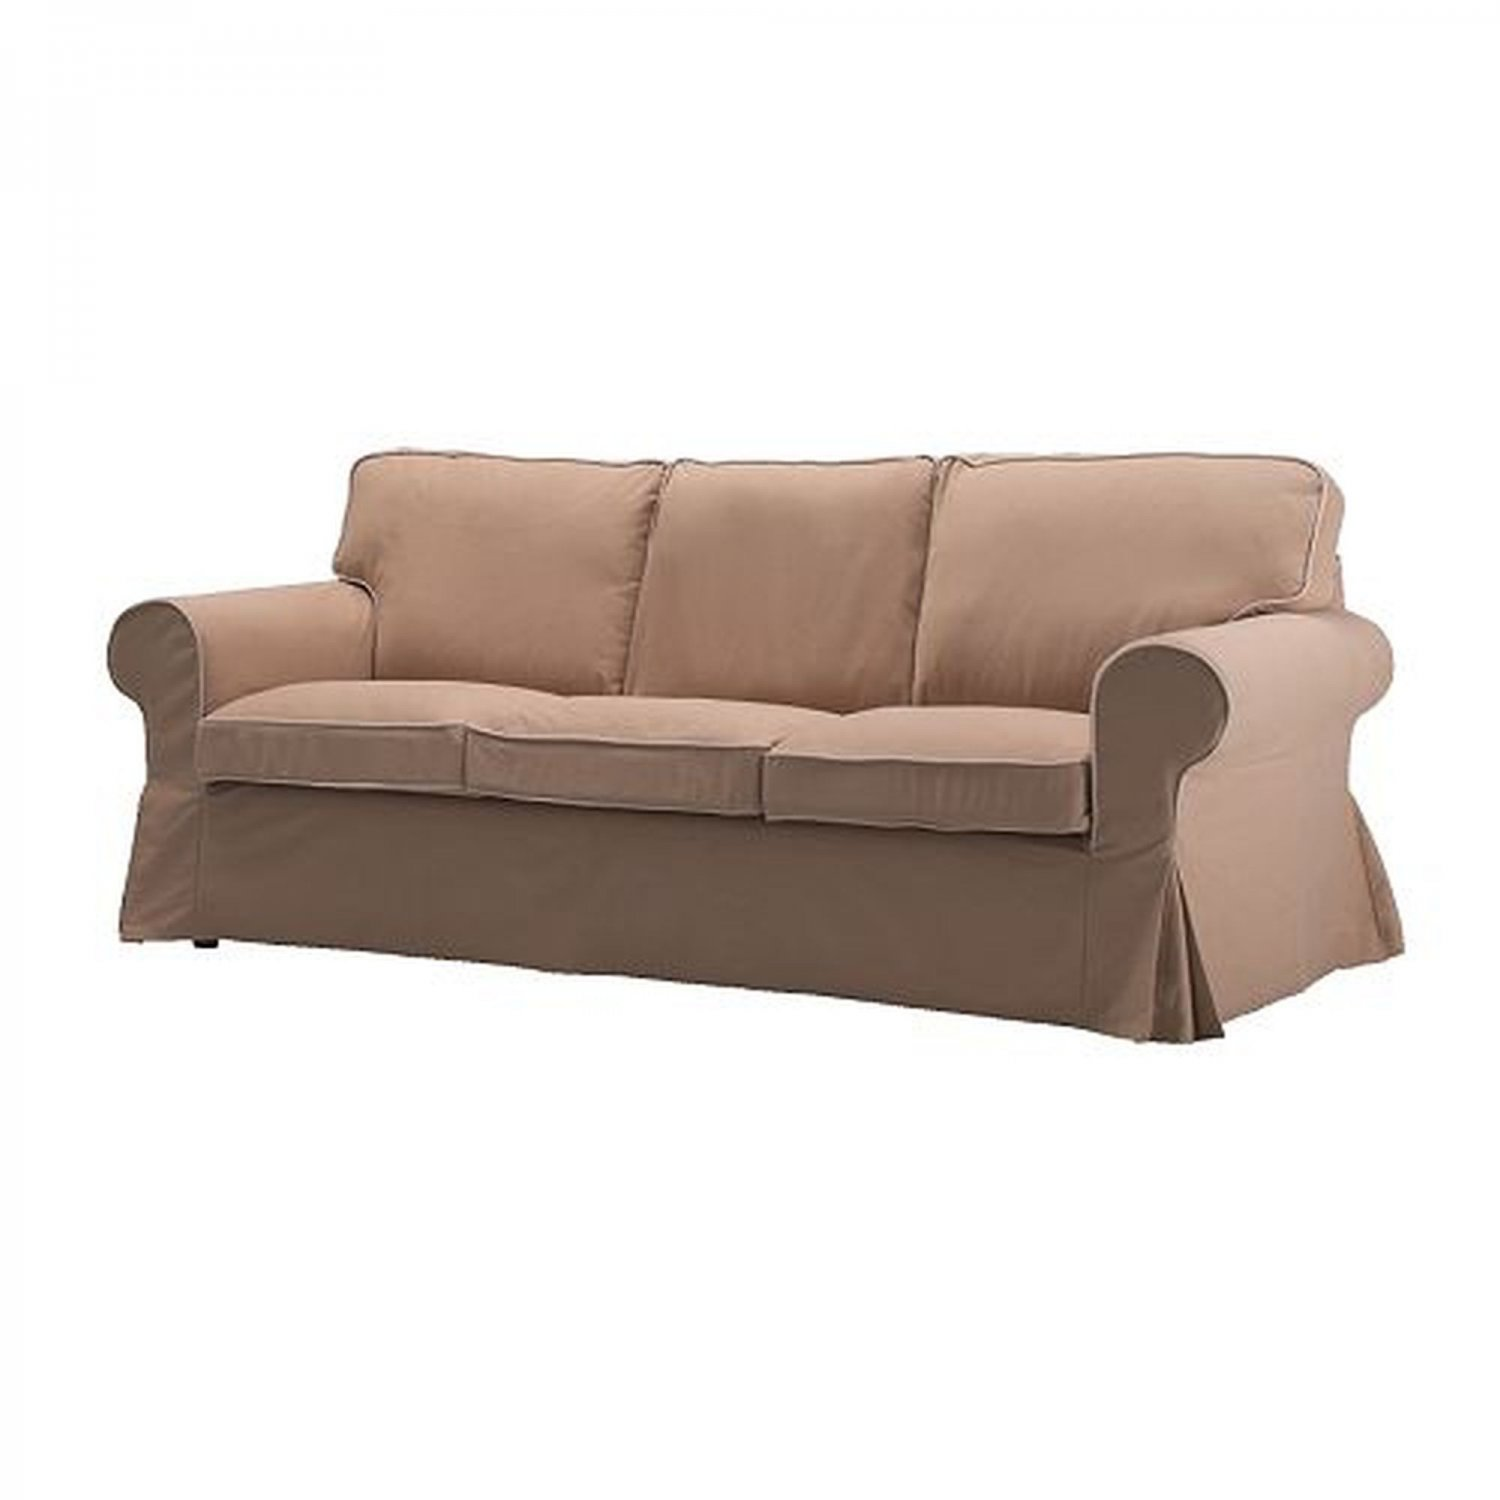 IKEA EKTORP 3 Seat Sofa SLIPCOVER Cover IDEMO BEIGE w Piping